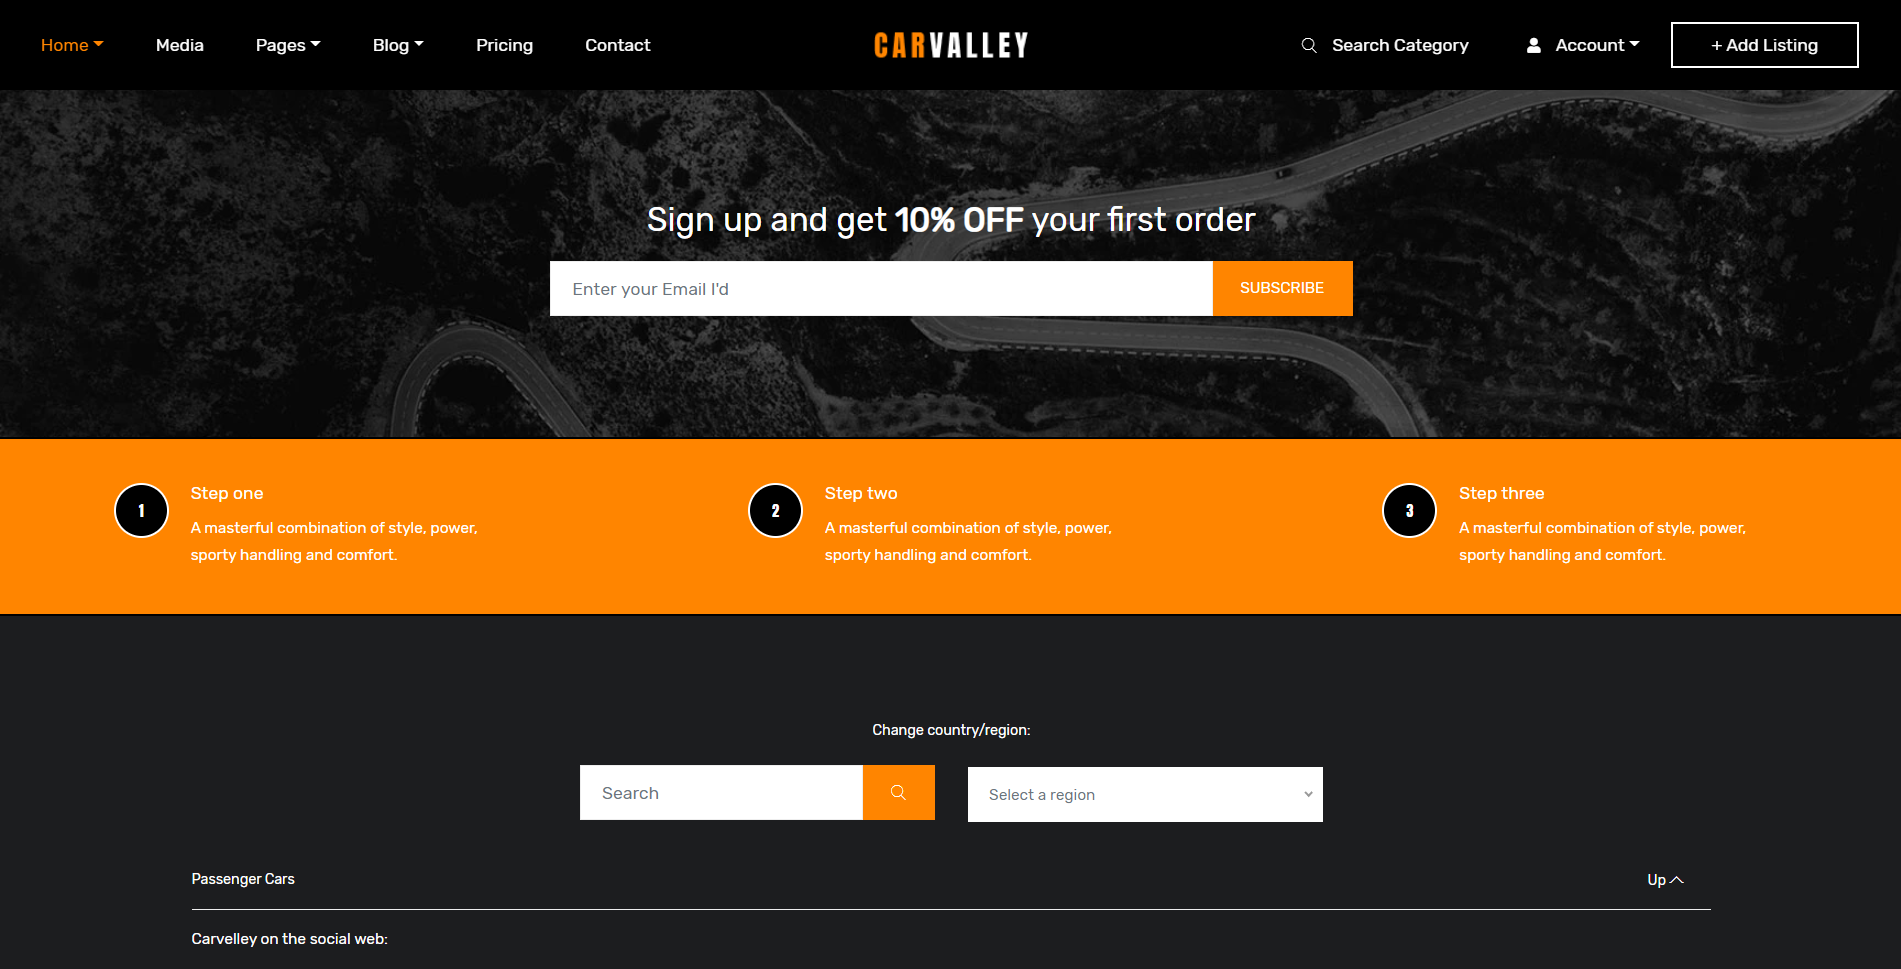 https://s3.tmimgcdn.com/templates/45291/scr/1576108619210_carvalley%20automobile%20template%20%20%281%29.png